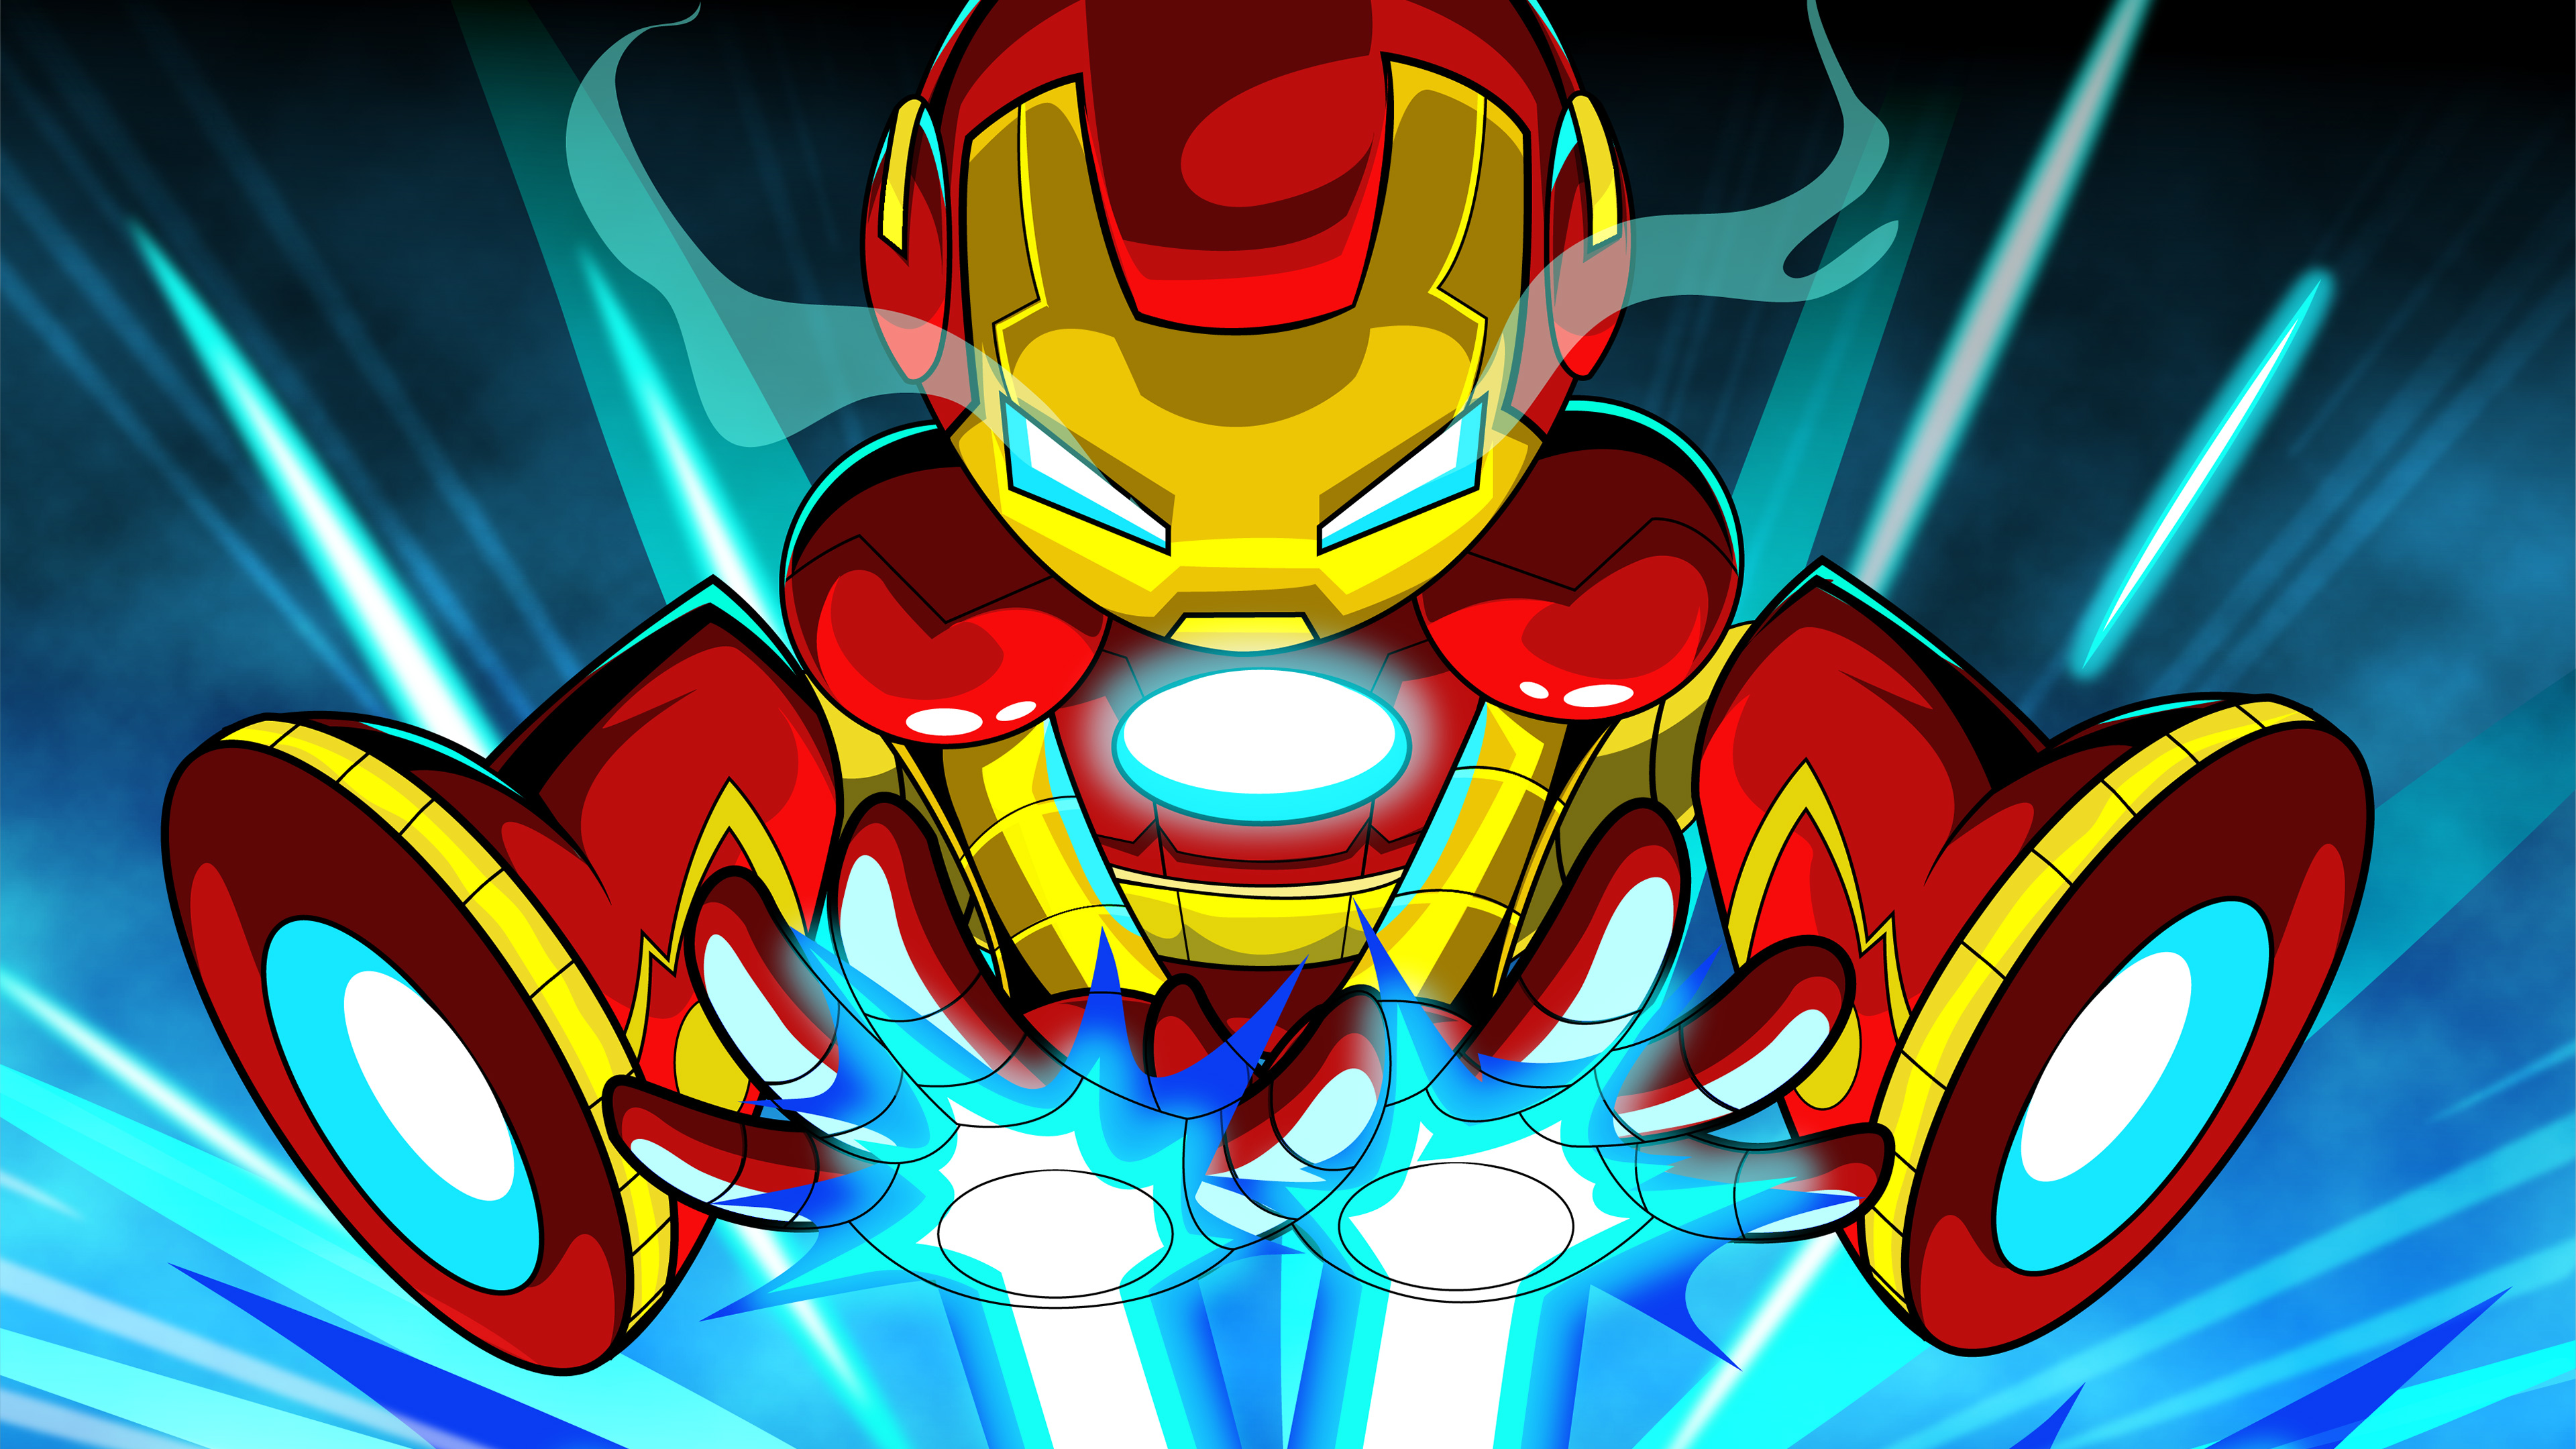 Iron Man Artwork 4k Wallpapers: Iron Man Cartoon Digital Art 4k, HD Superheroes, 4k